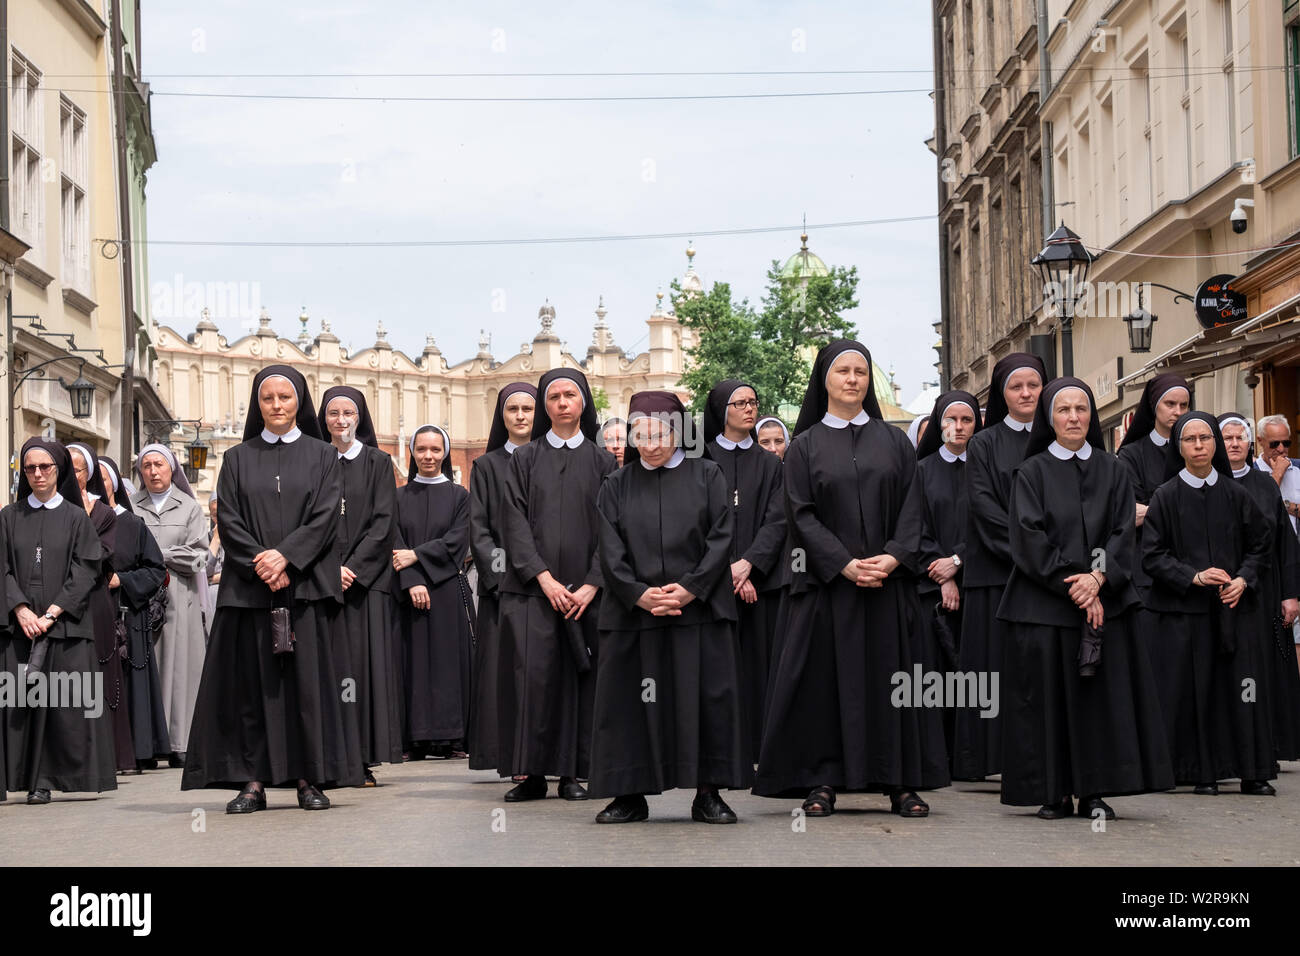 Nuns taking part in a procession for the Feast of Corpus Christi, in the streets of Krakow old town, Poland, near the Main Market Square. - Stock Image